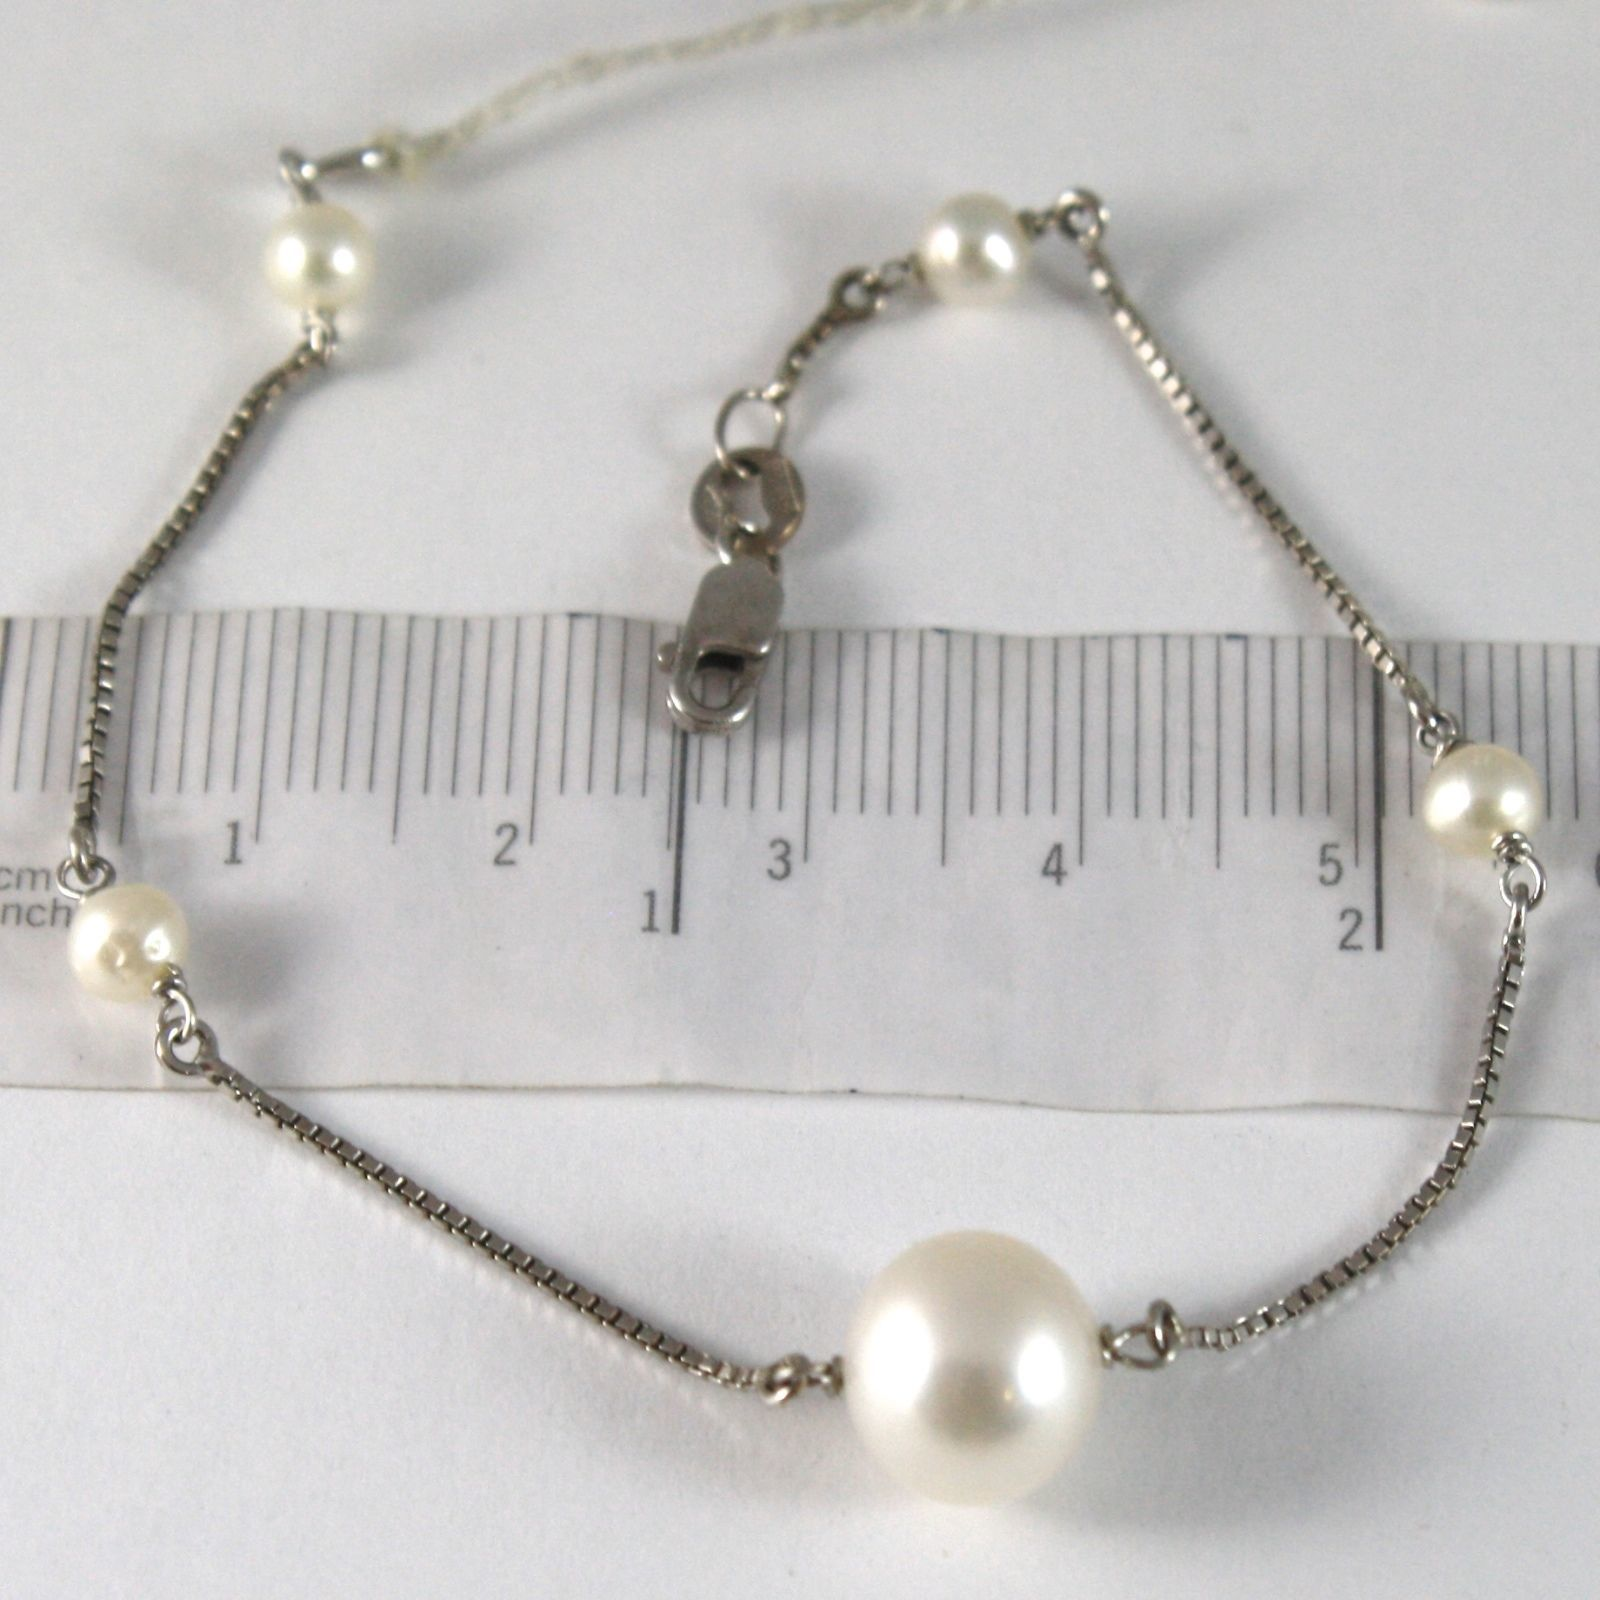 BRACELET WHITE GOLD 750 18K, WHITE PEARLS DIAMETER 4 E 10 MM, CHAIN VENETIAN